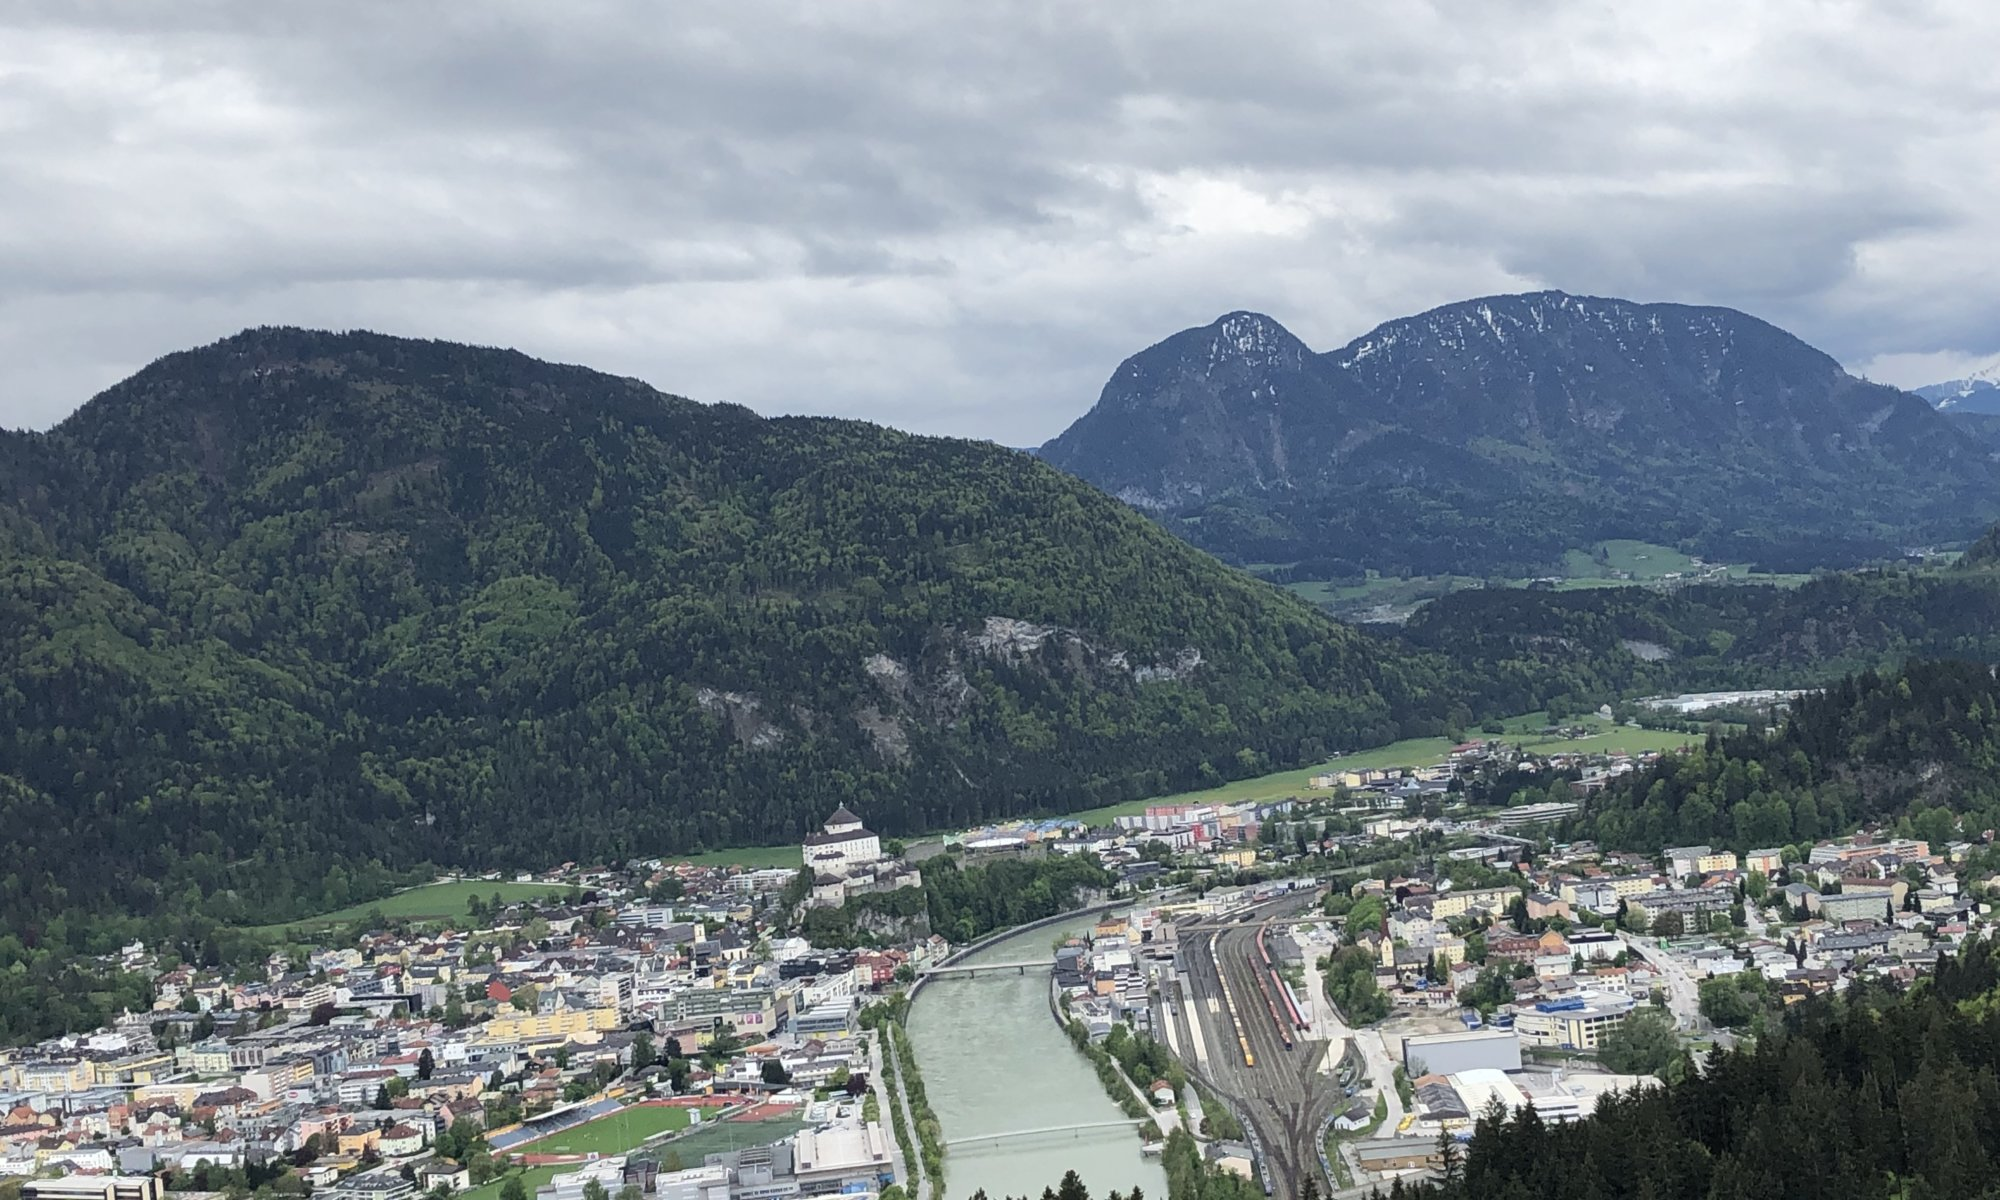 Kufstein, seen from Thierberg, Austria